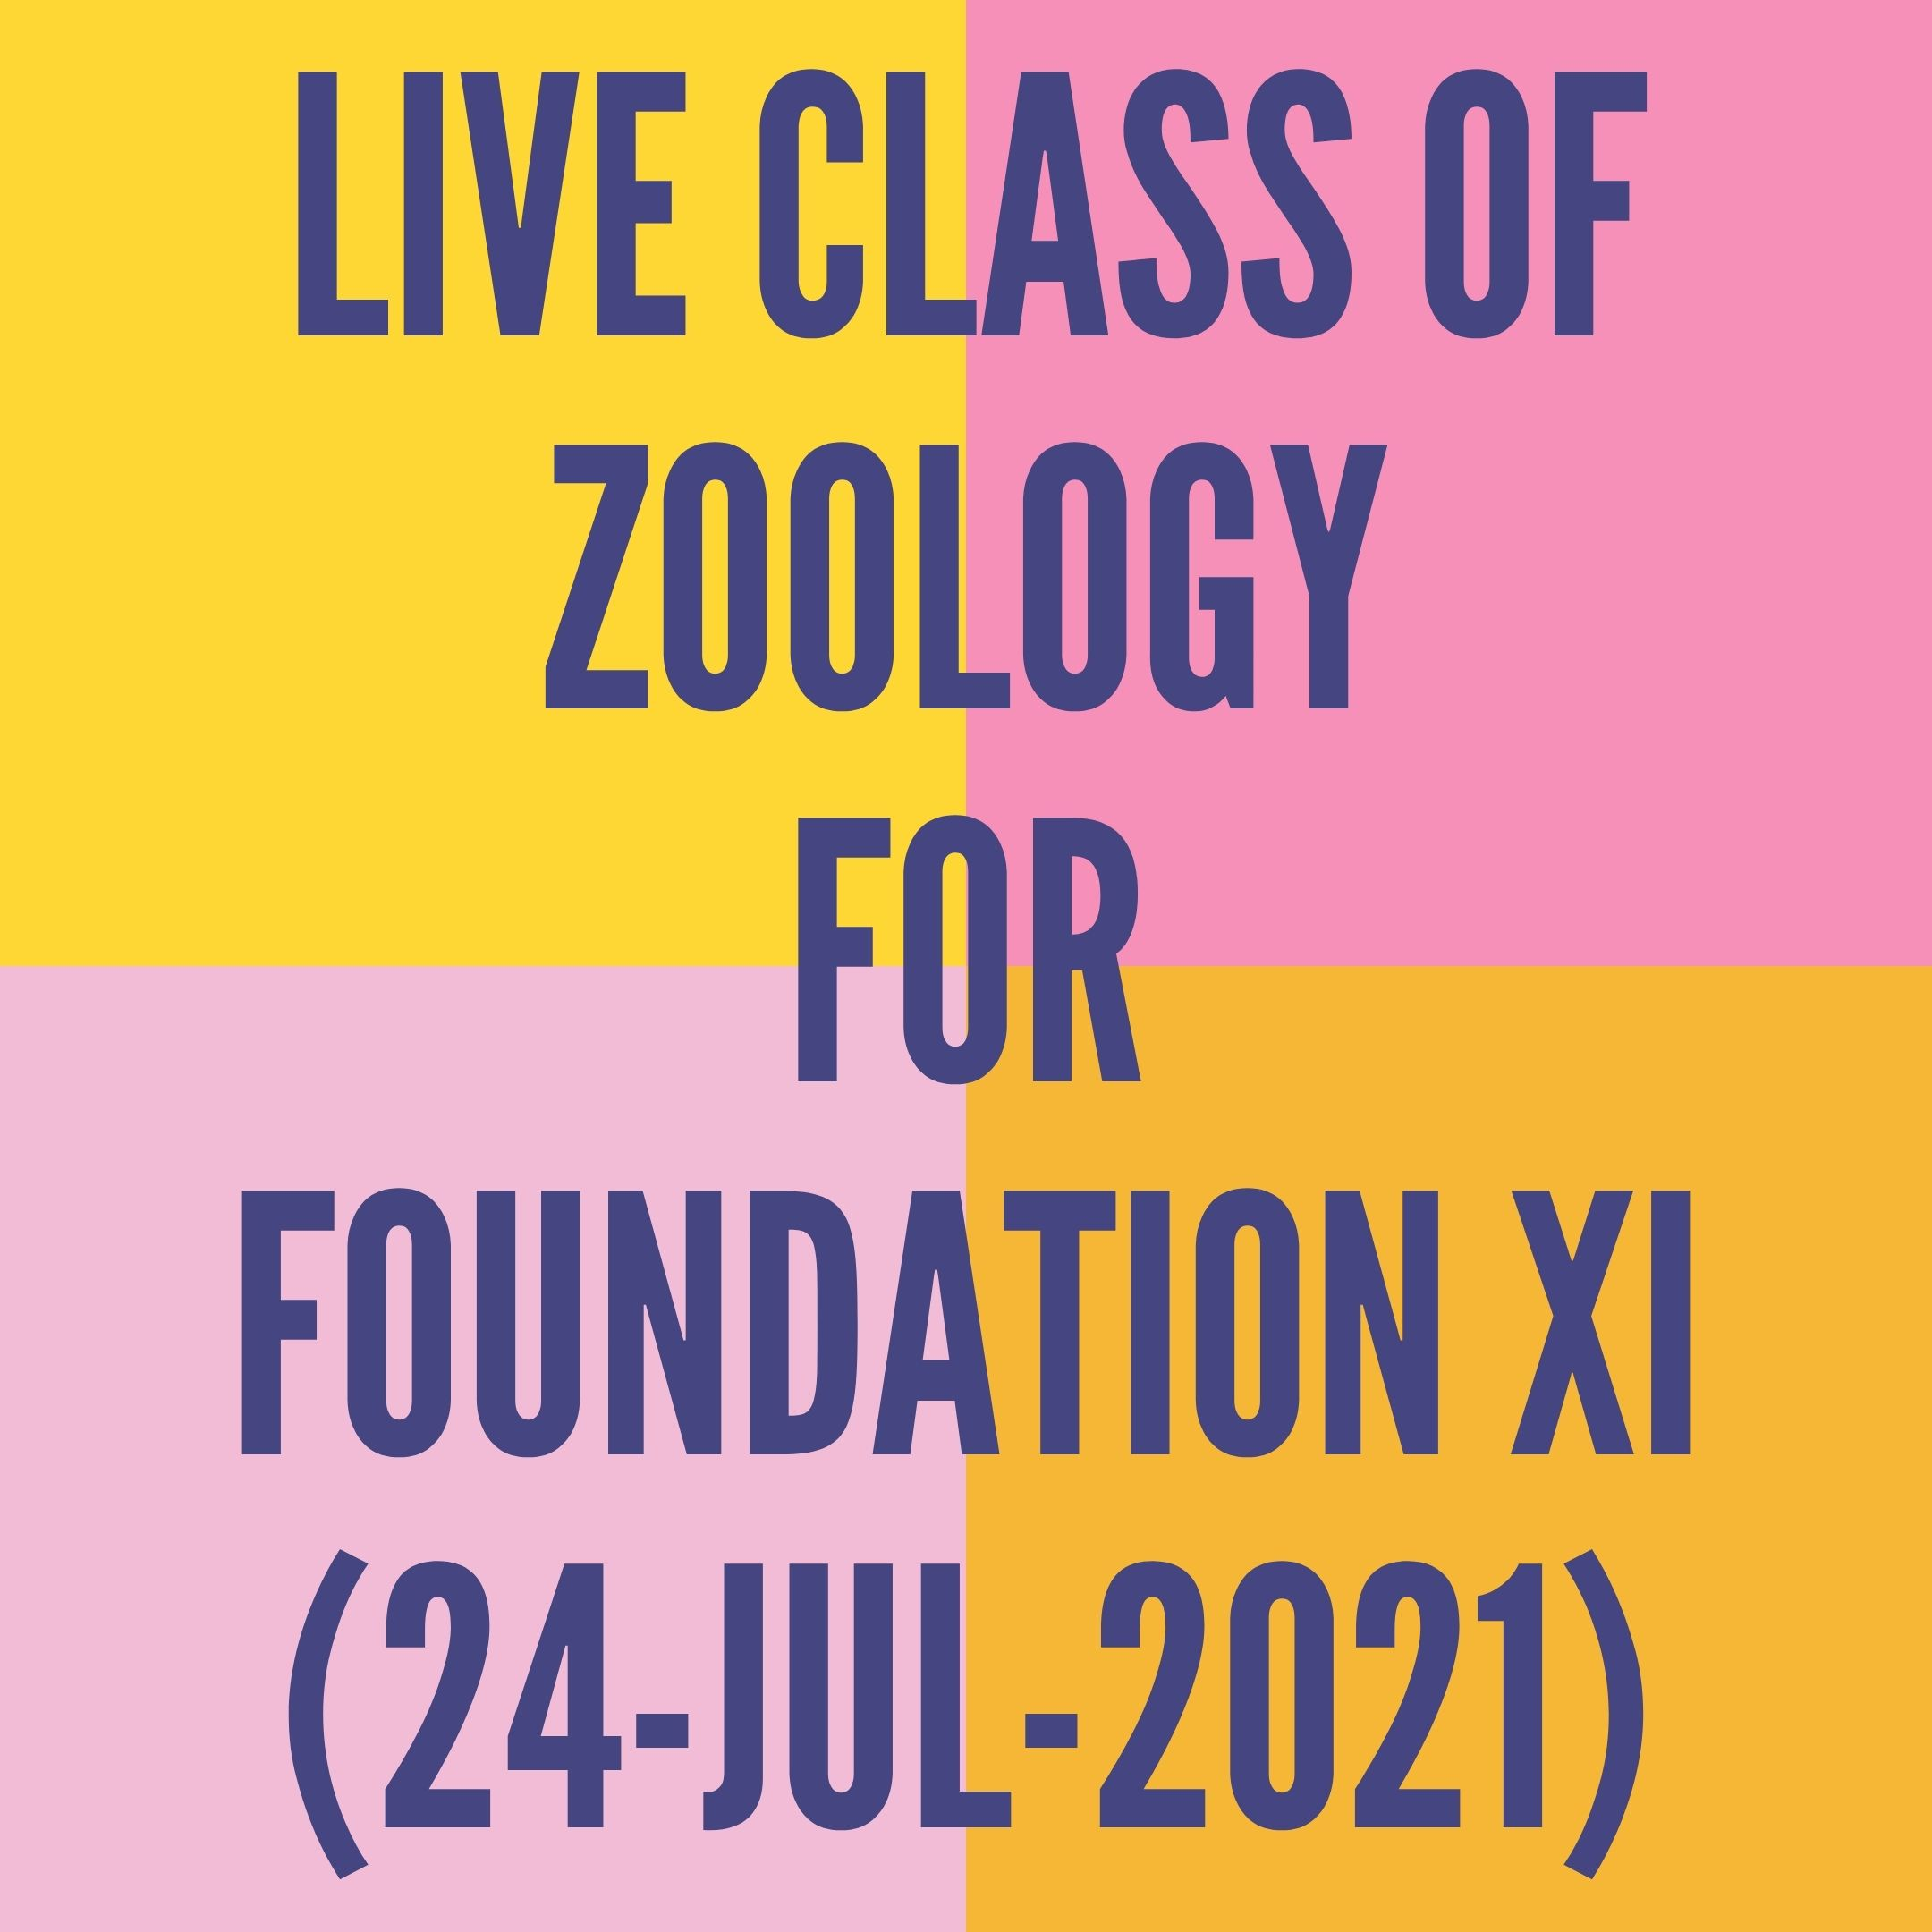 LIVE CLASS OF ZOOLOGY FOR FOUNDATION XI (24-JUL-2021) BREATHING & GASEOUS EXCHANGE